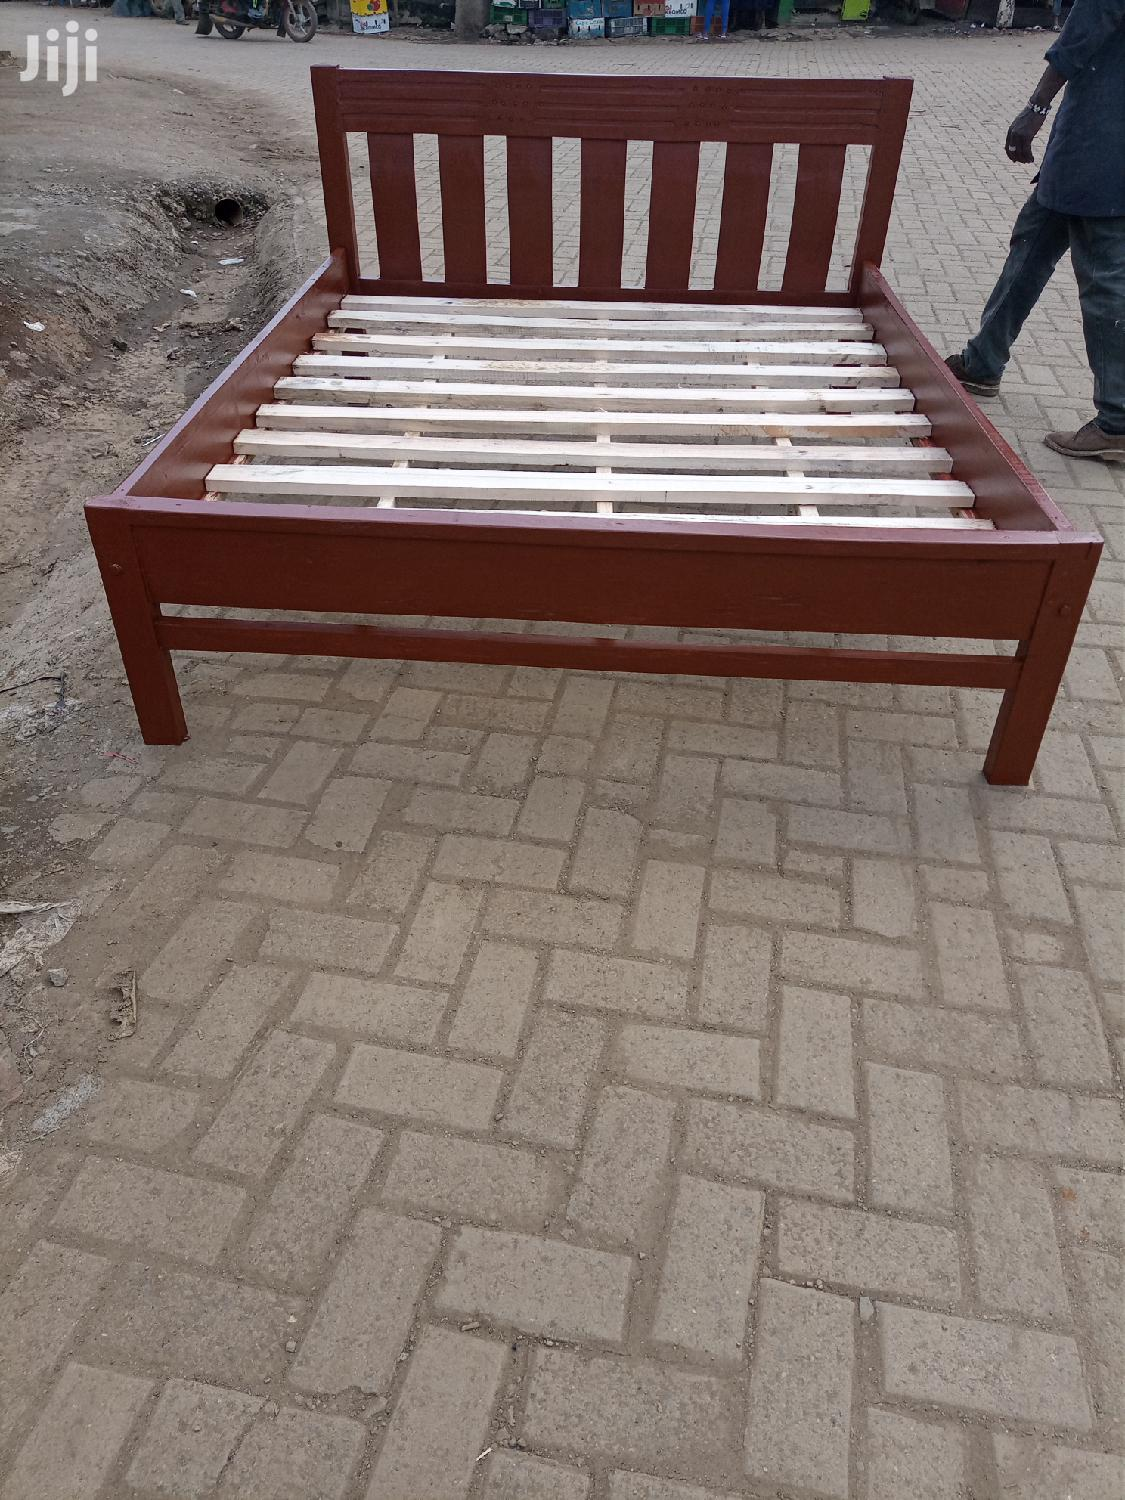 New Beds 5 by 6 on Sale in Zimmerman